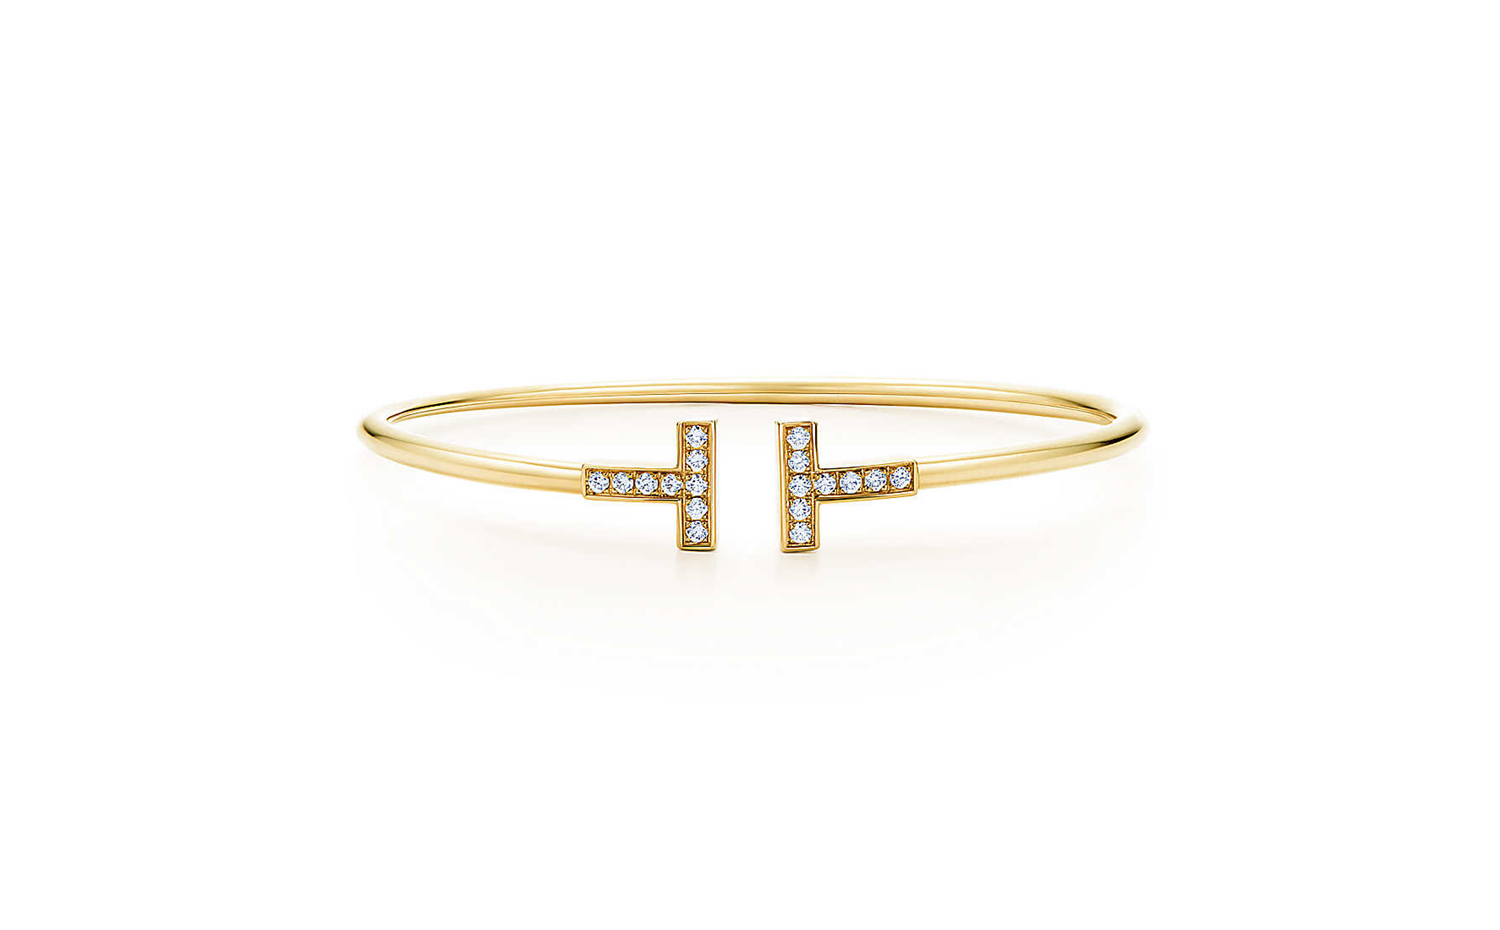 Tiffany T Wire Bracelet in Gold